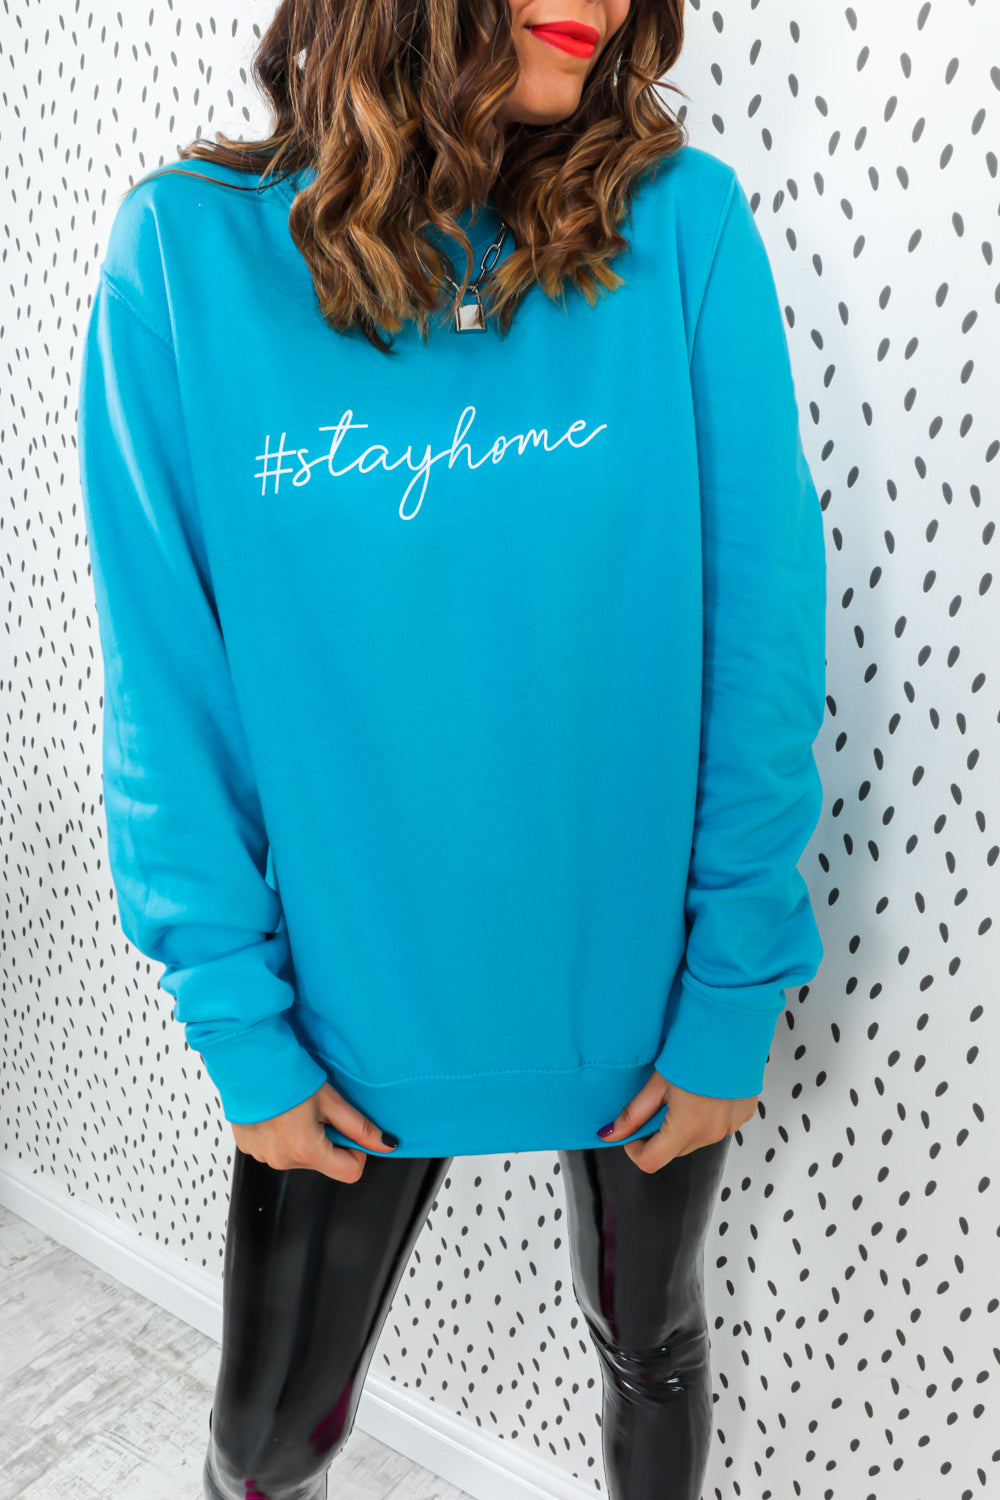 Stay Home - Oversized Jumper In TURQUOISE/BLUE